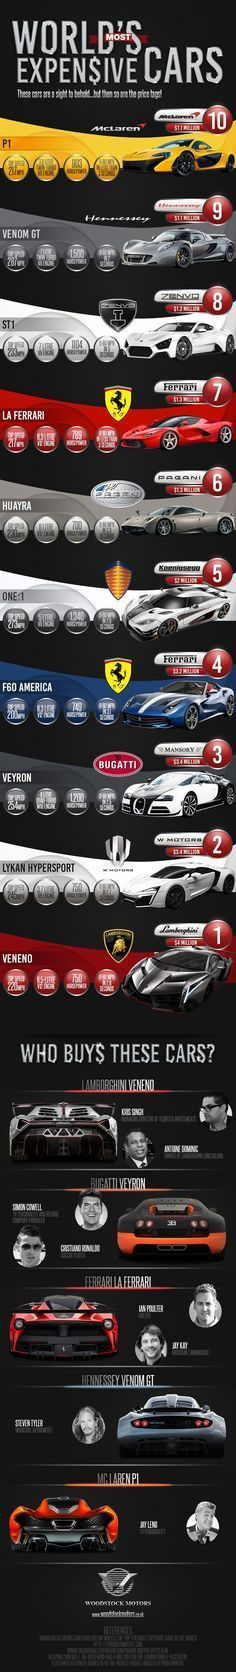 Most Expensive Cars in the World - Do you fancy an infographic? There are a lot of them online, but if you want your own please visit http://www.linfografico.com/prezzi/ Online girano molte infografiche, se ne vuoi realizzare una tutta tua visita http://www.linfografico.com/prezzi/